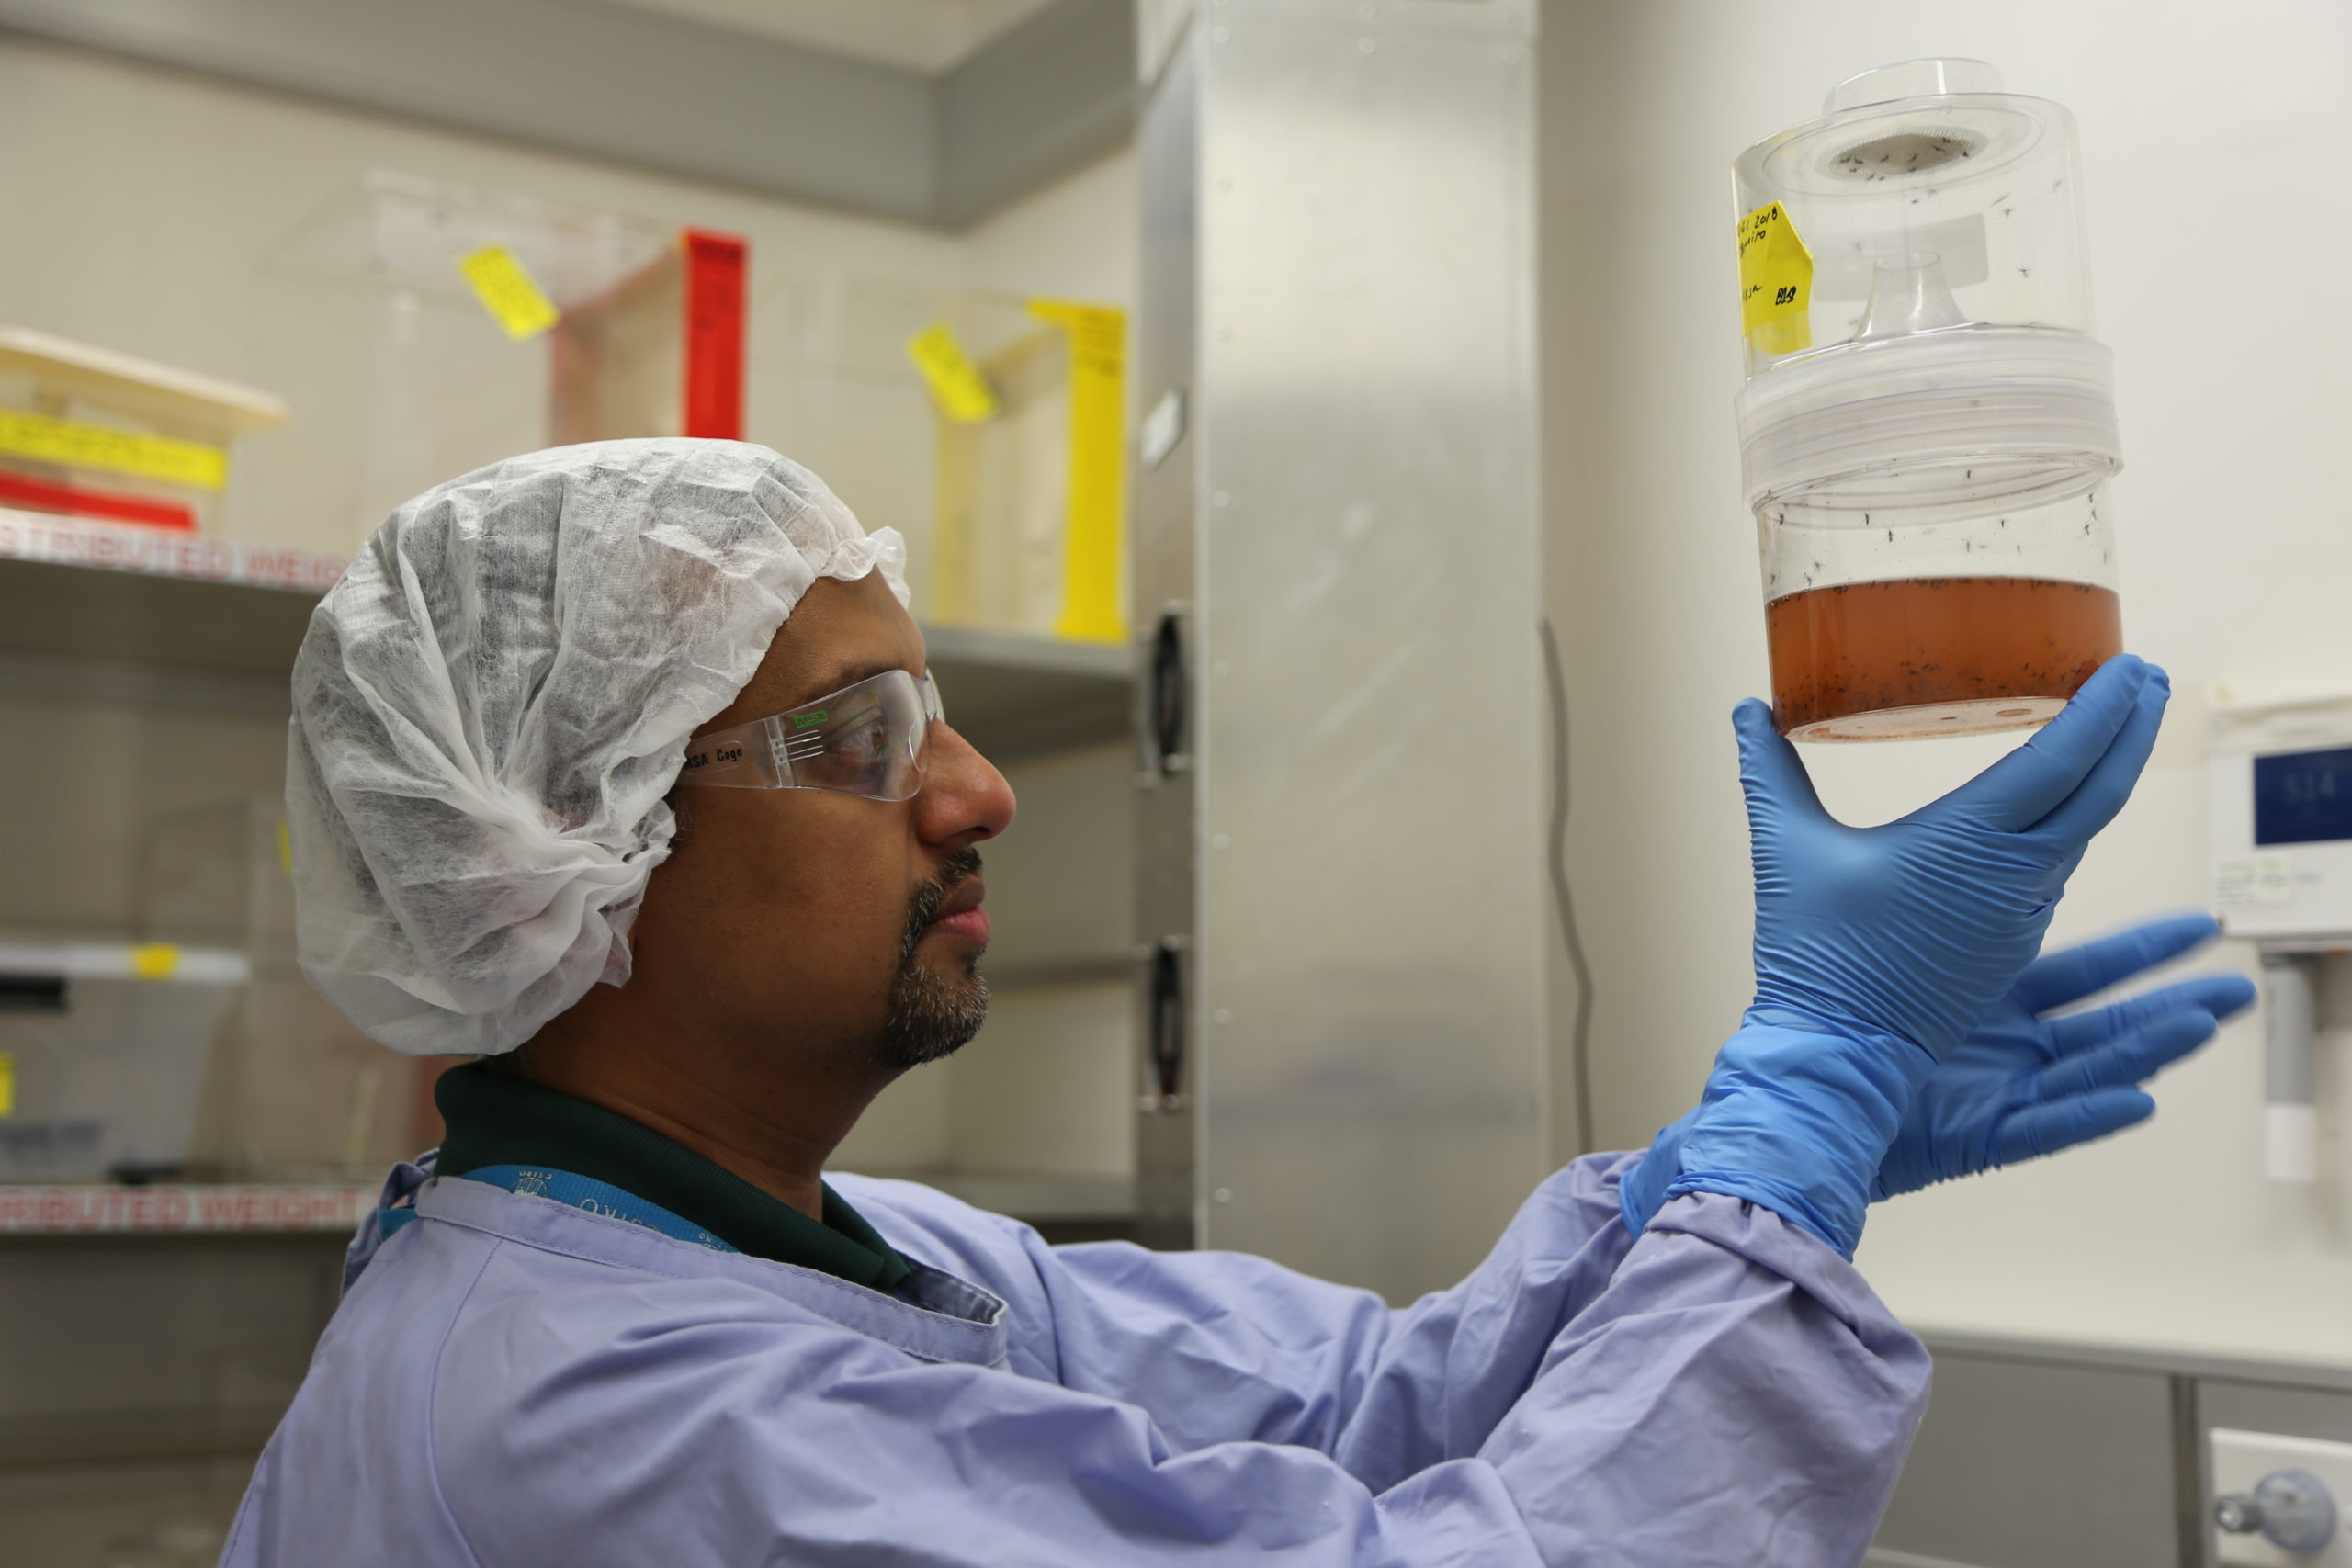 A man in a hairnet, lab coat, safety goggles and blue gloves holds up a container filled with water, mosquito larvae and hatched mosquitoes.